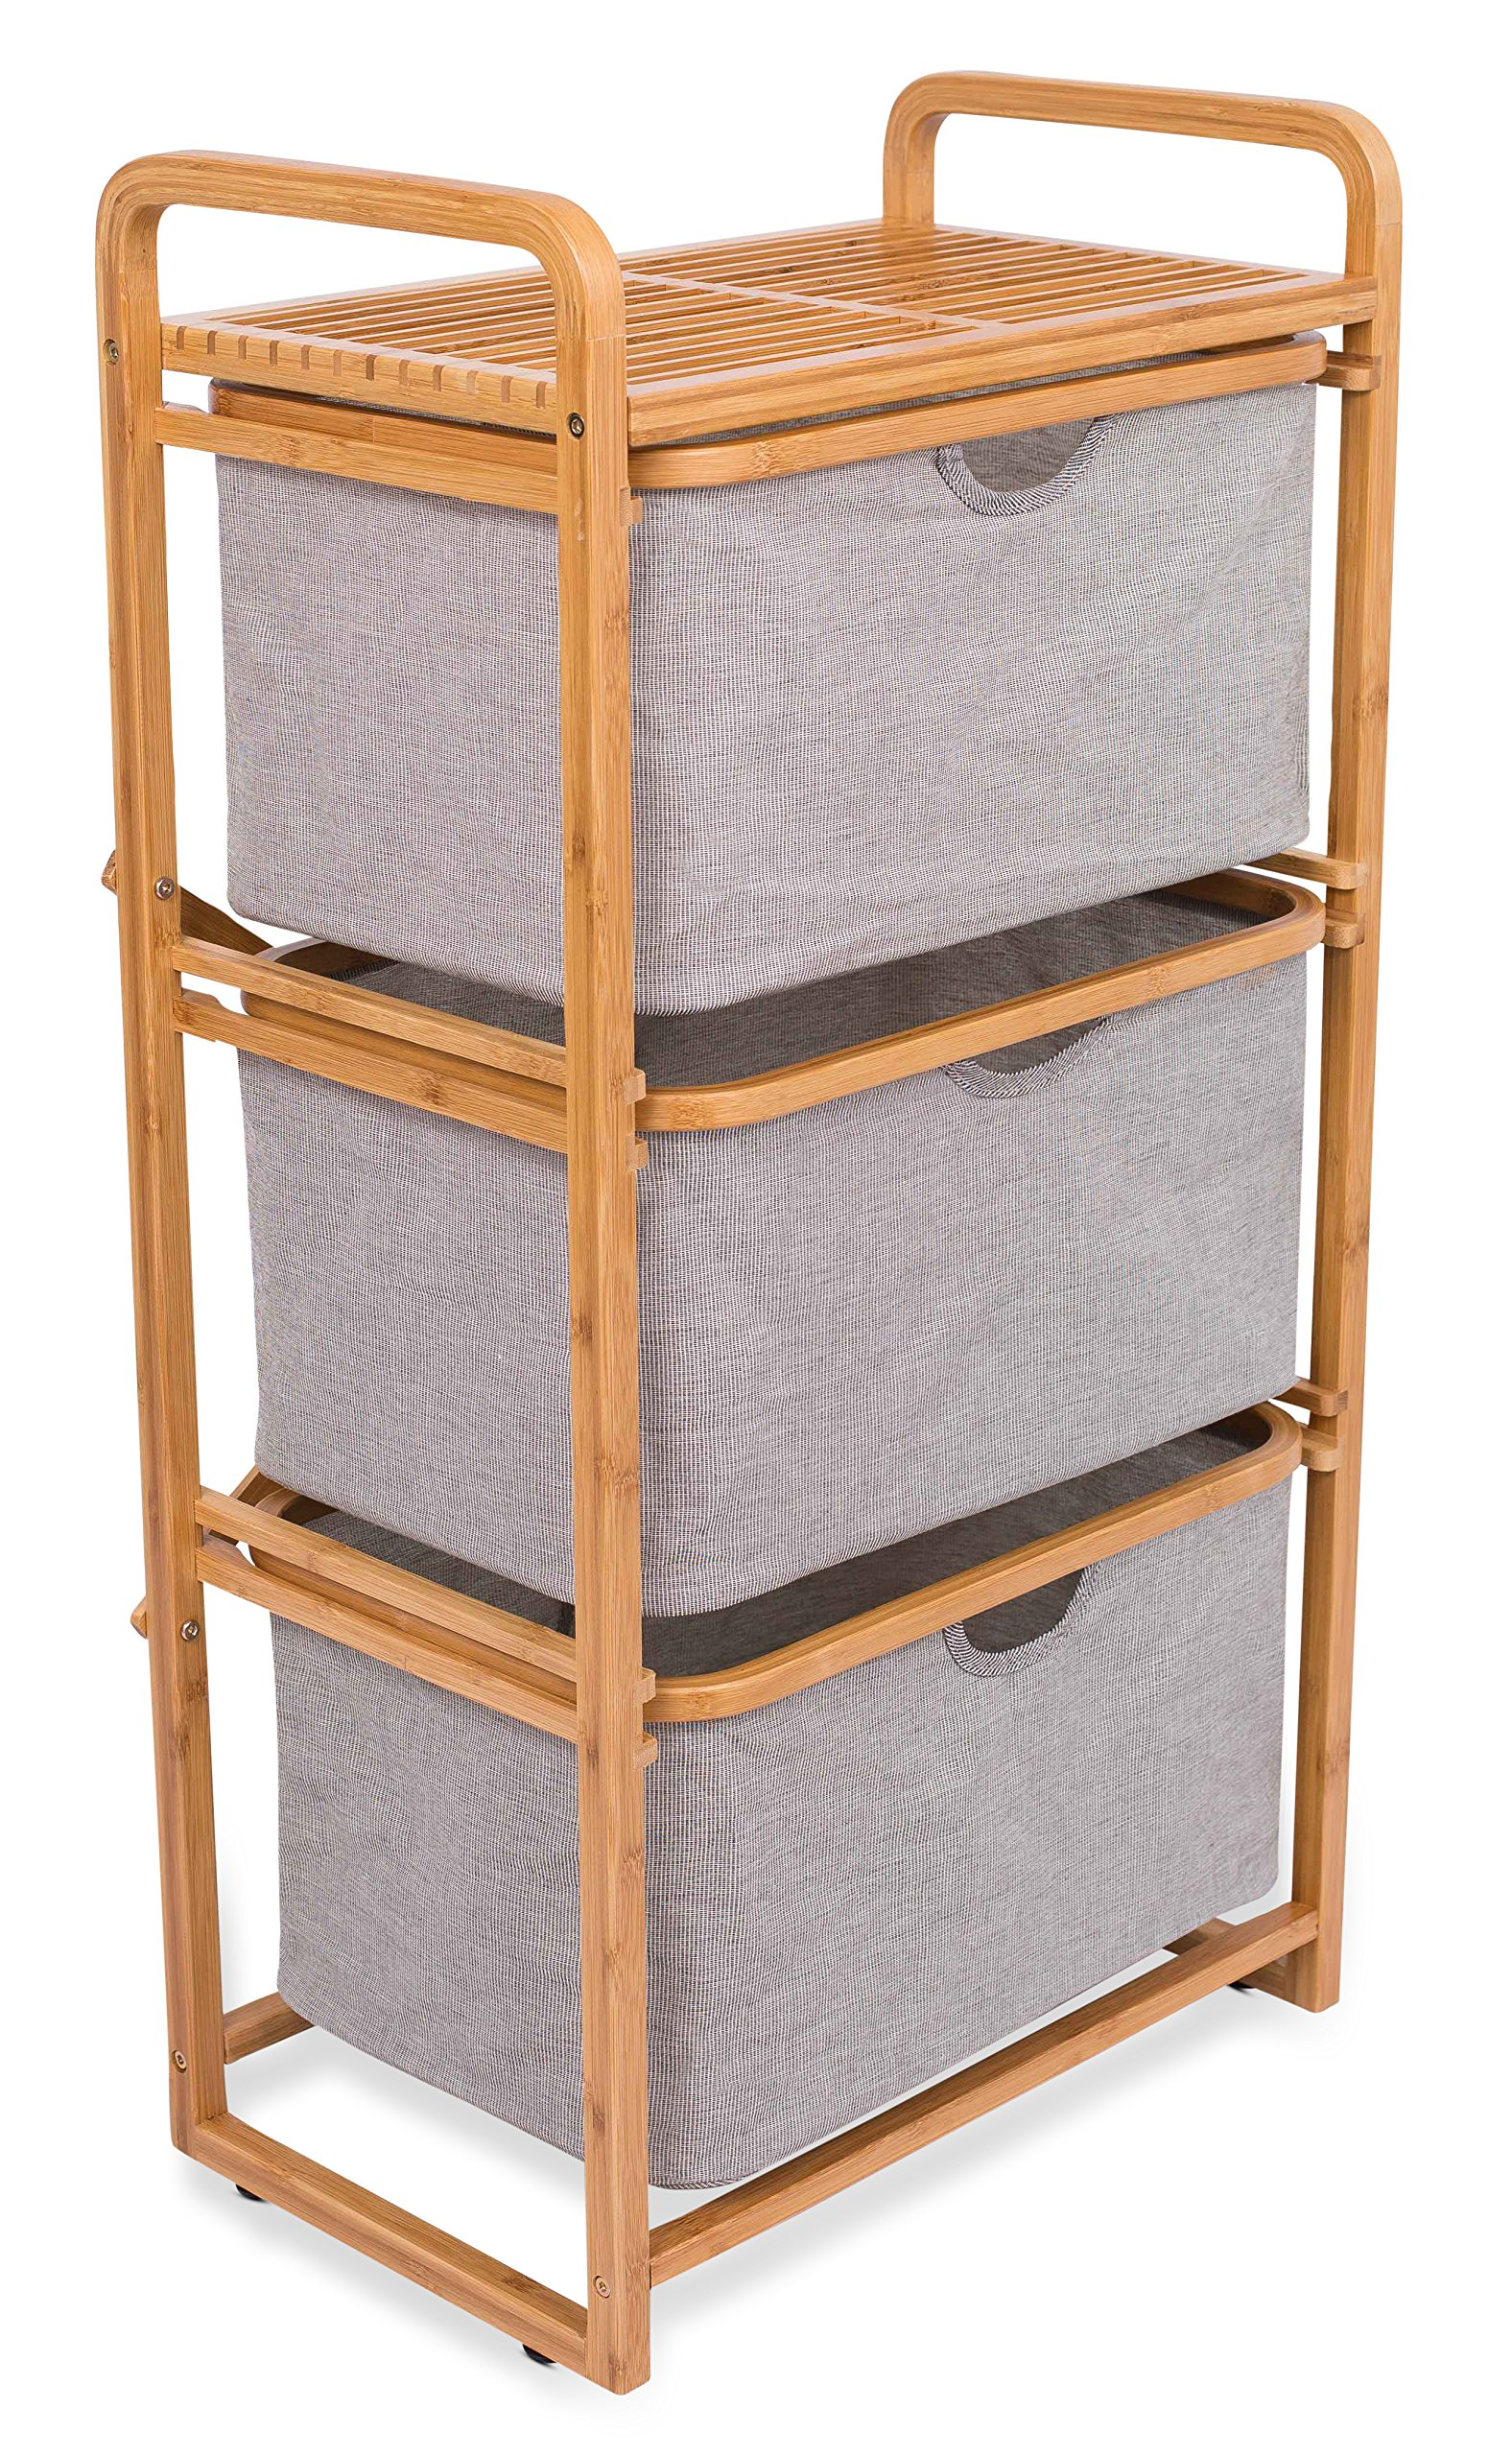 BirdRock Home 3 Drawer Bamboo Dresser   3 Tier Sliding Cloth Storage Bins Chest of Drawers   Removable Drawers   Grey